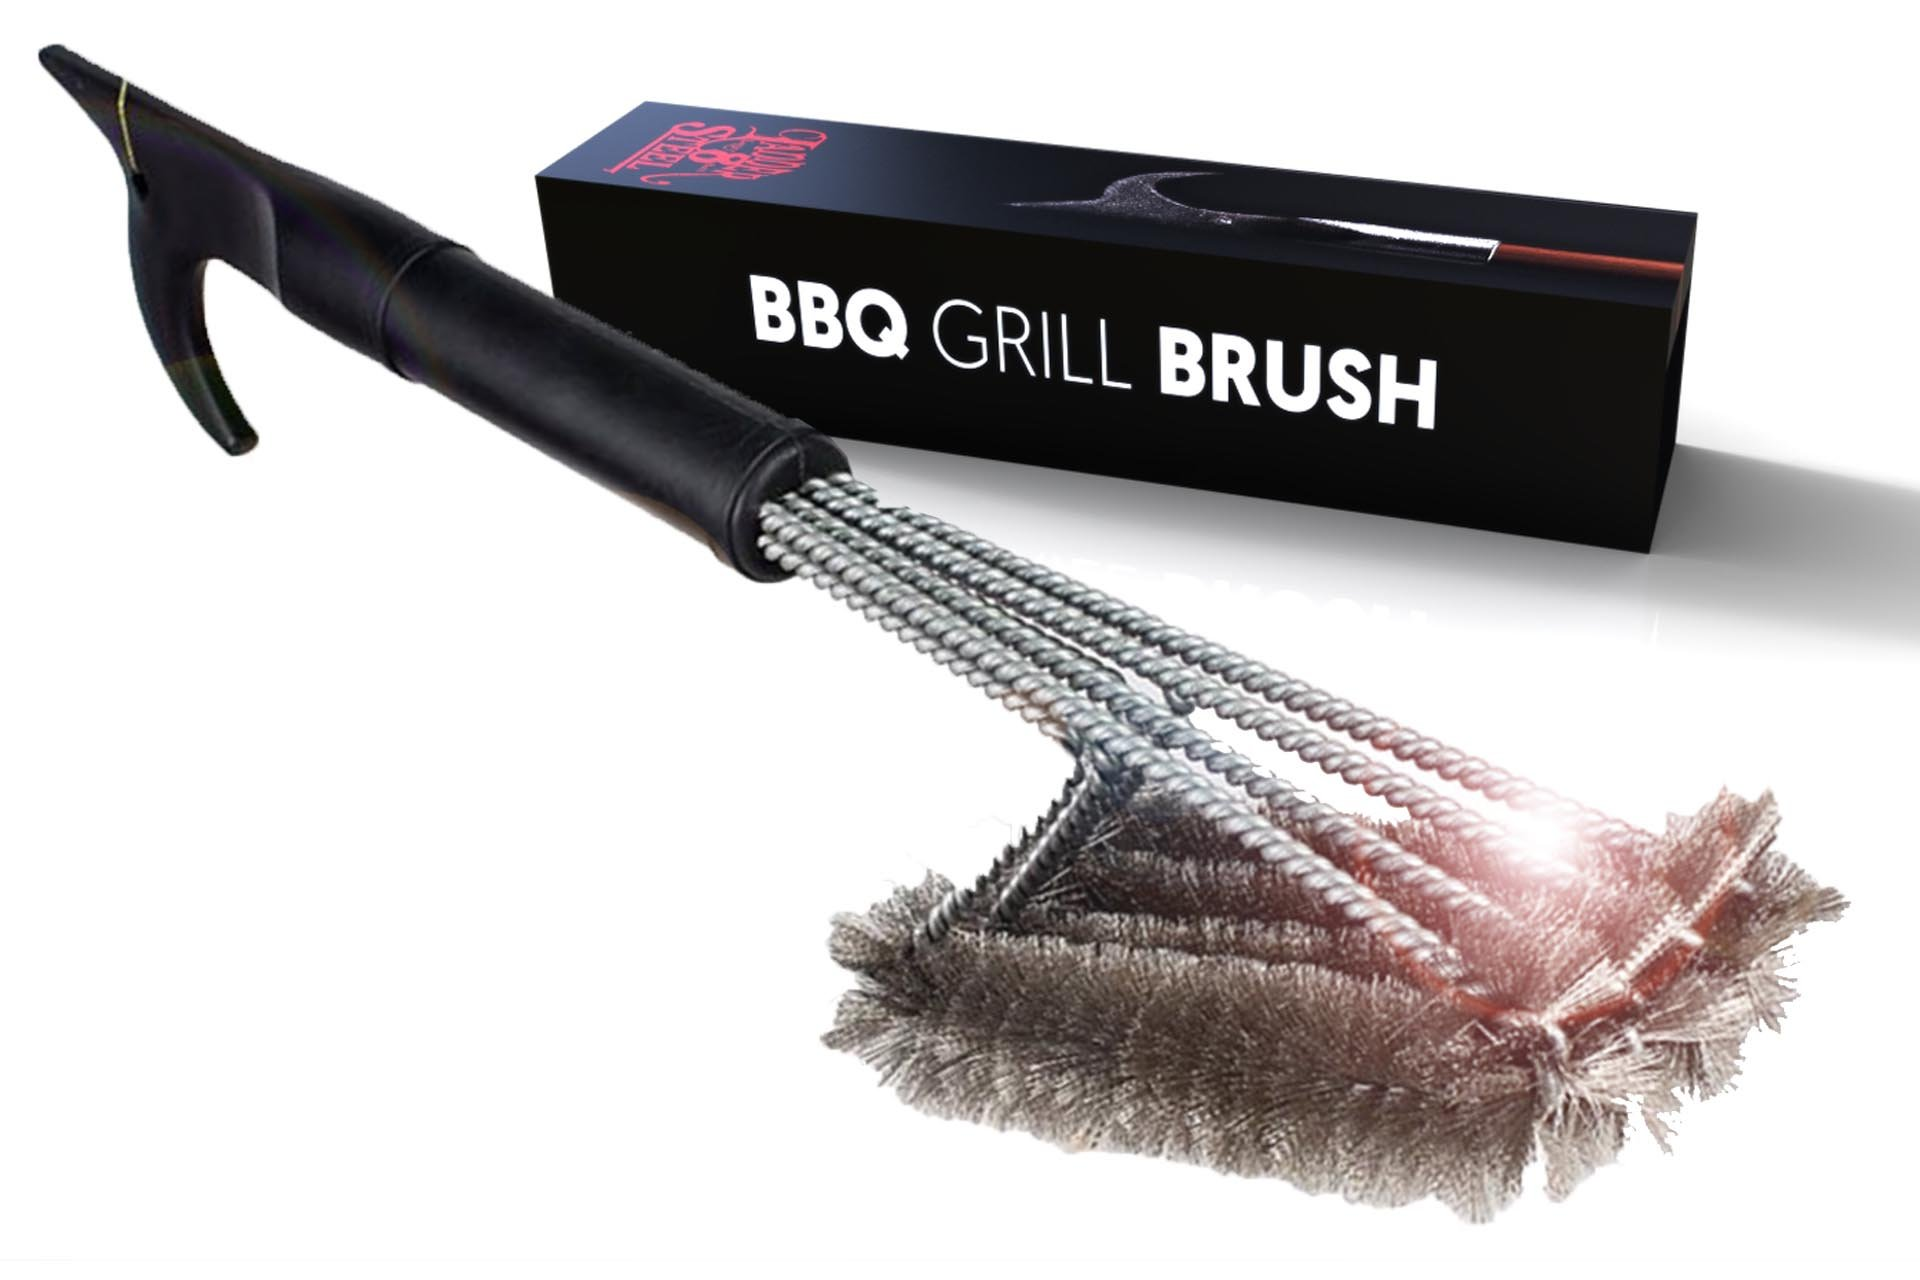 Best BBQ Grill Brush 4-in-1 Head Design | 18'' Grill Cleaner - Safe Tool | Steel Bristles, Won't Scratch Grate | Perfect BBQ Tools Gift for Men, Barbeque Grill Accessory | Fireman Designed by Jolly Green Products